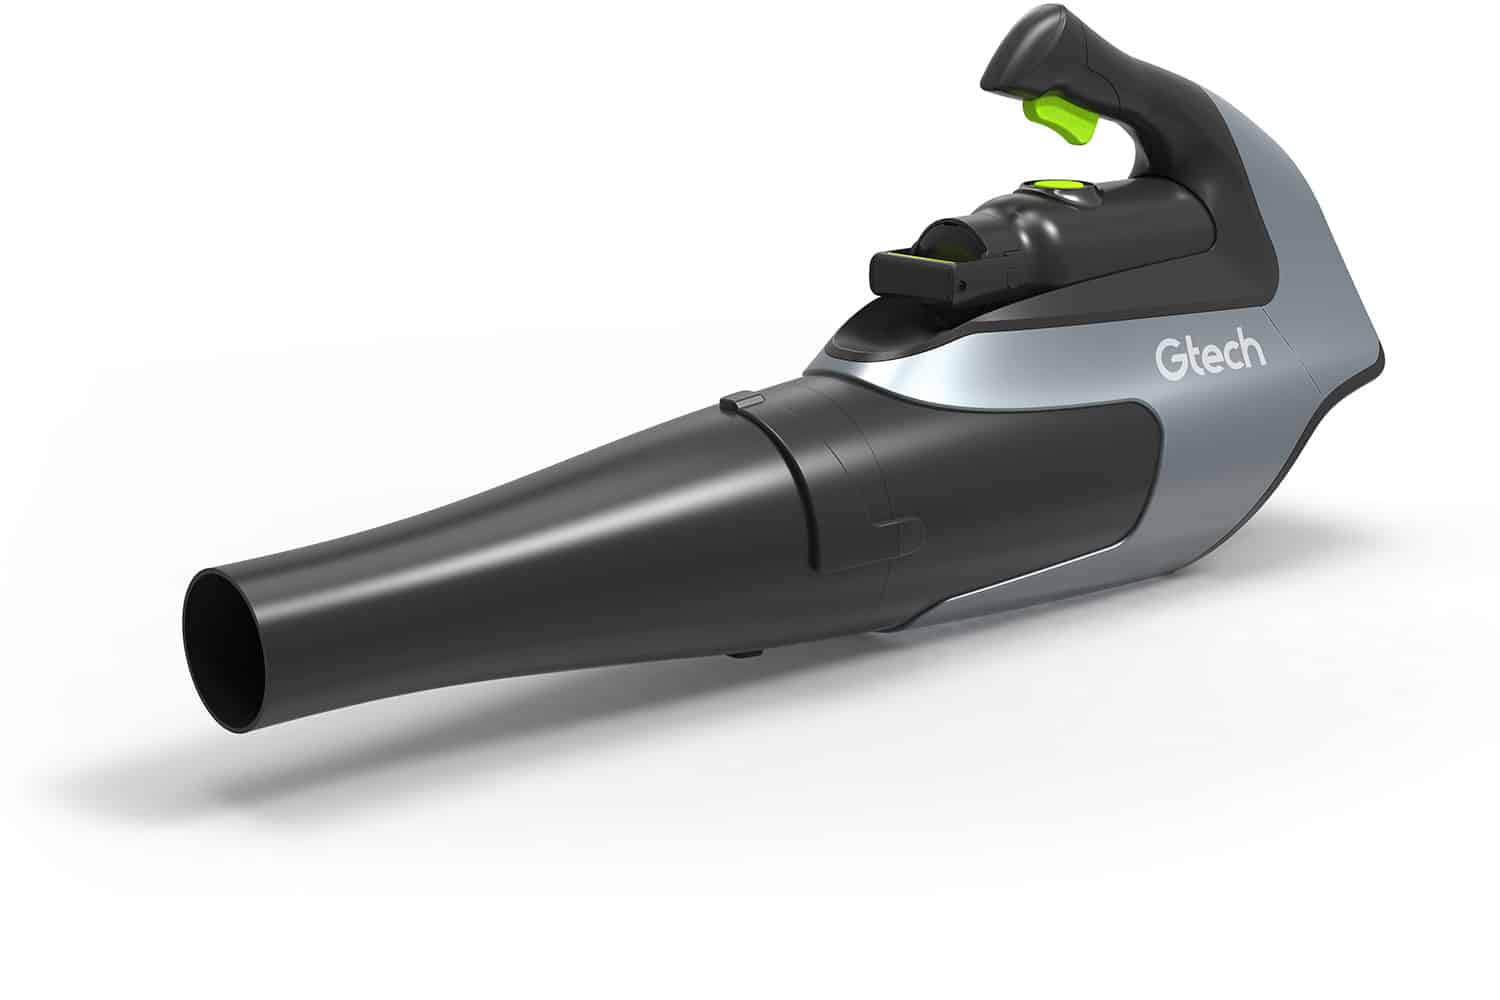 Gtech Leaf Blower LB01 Review